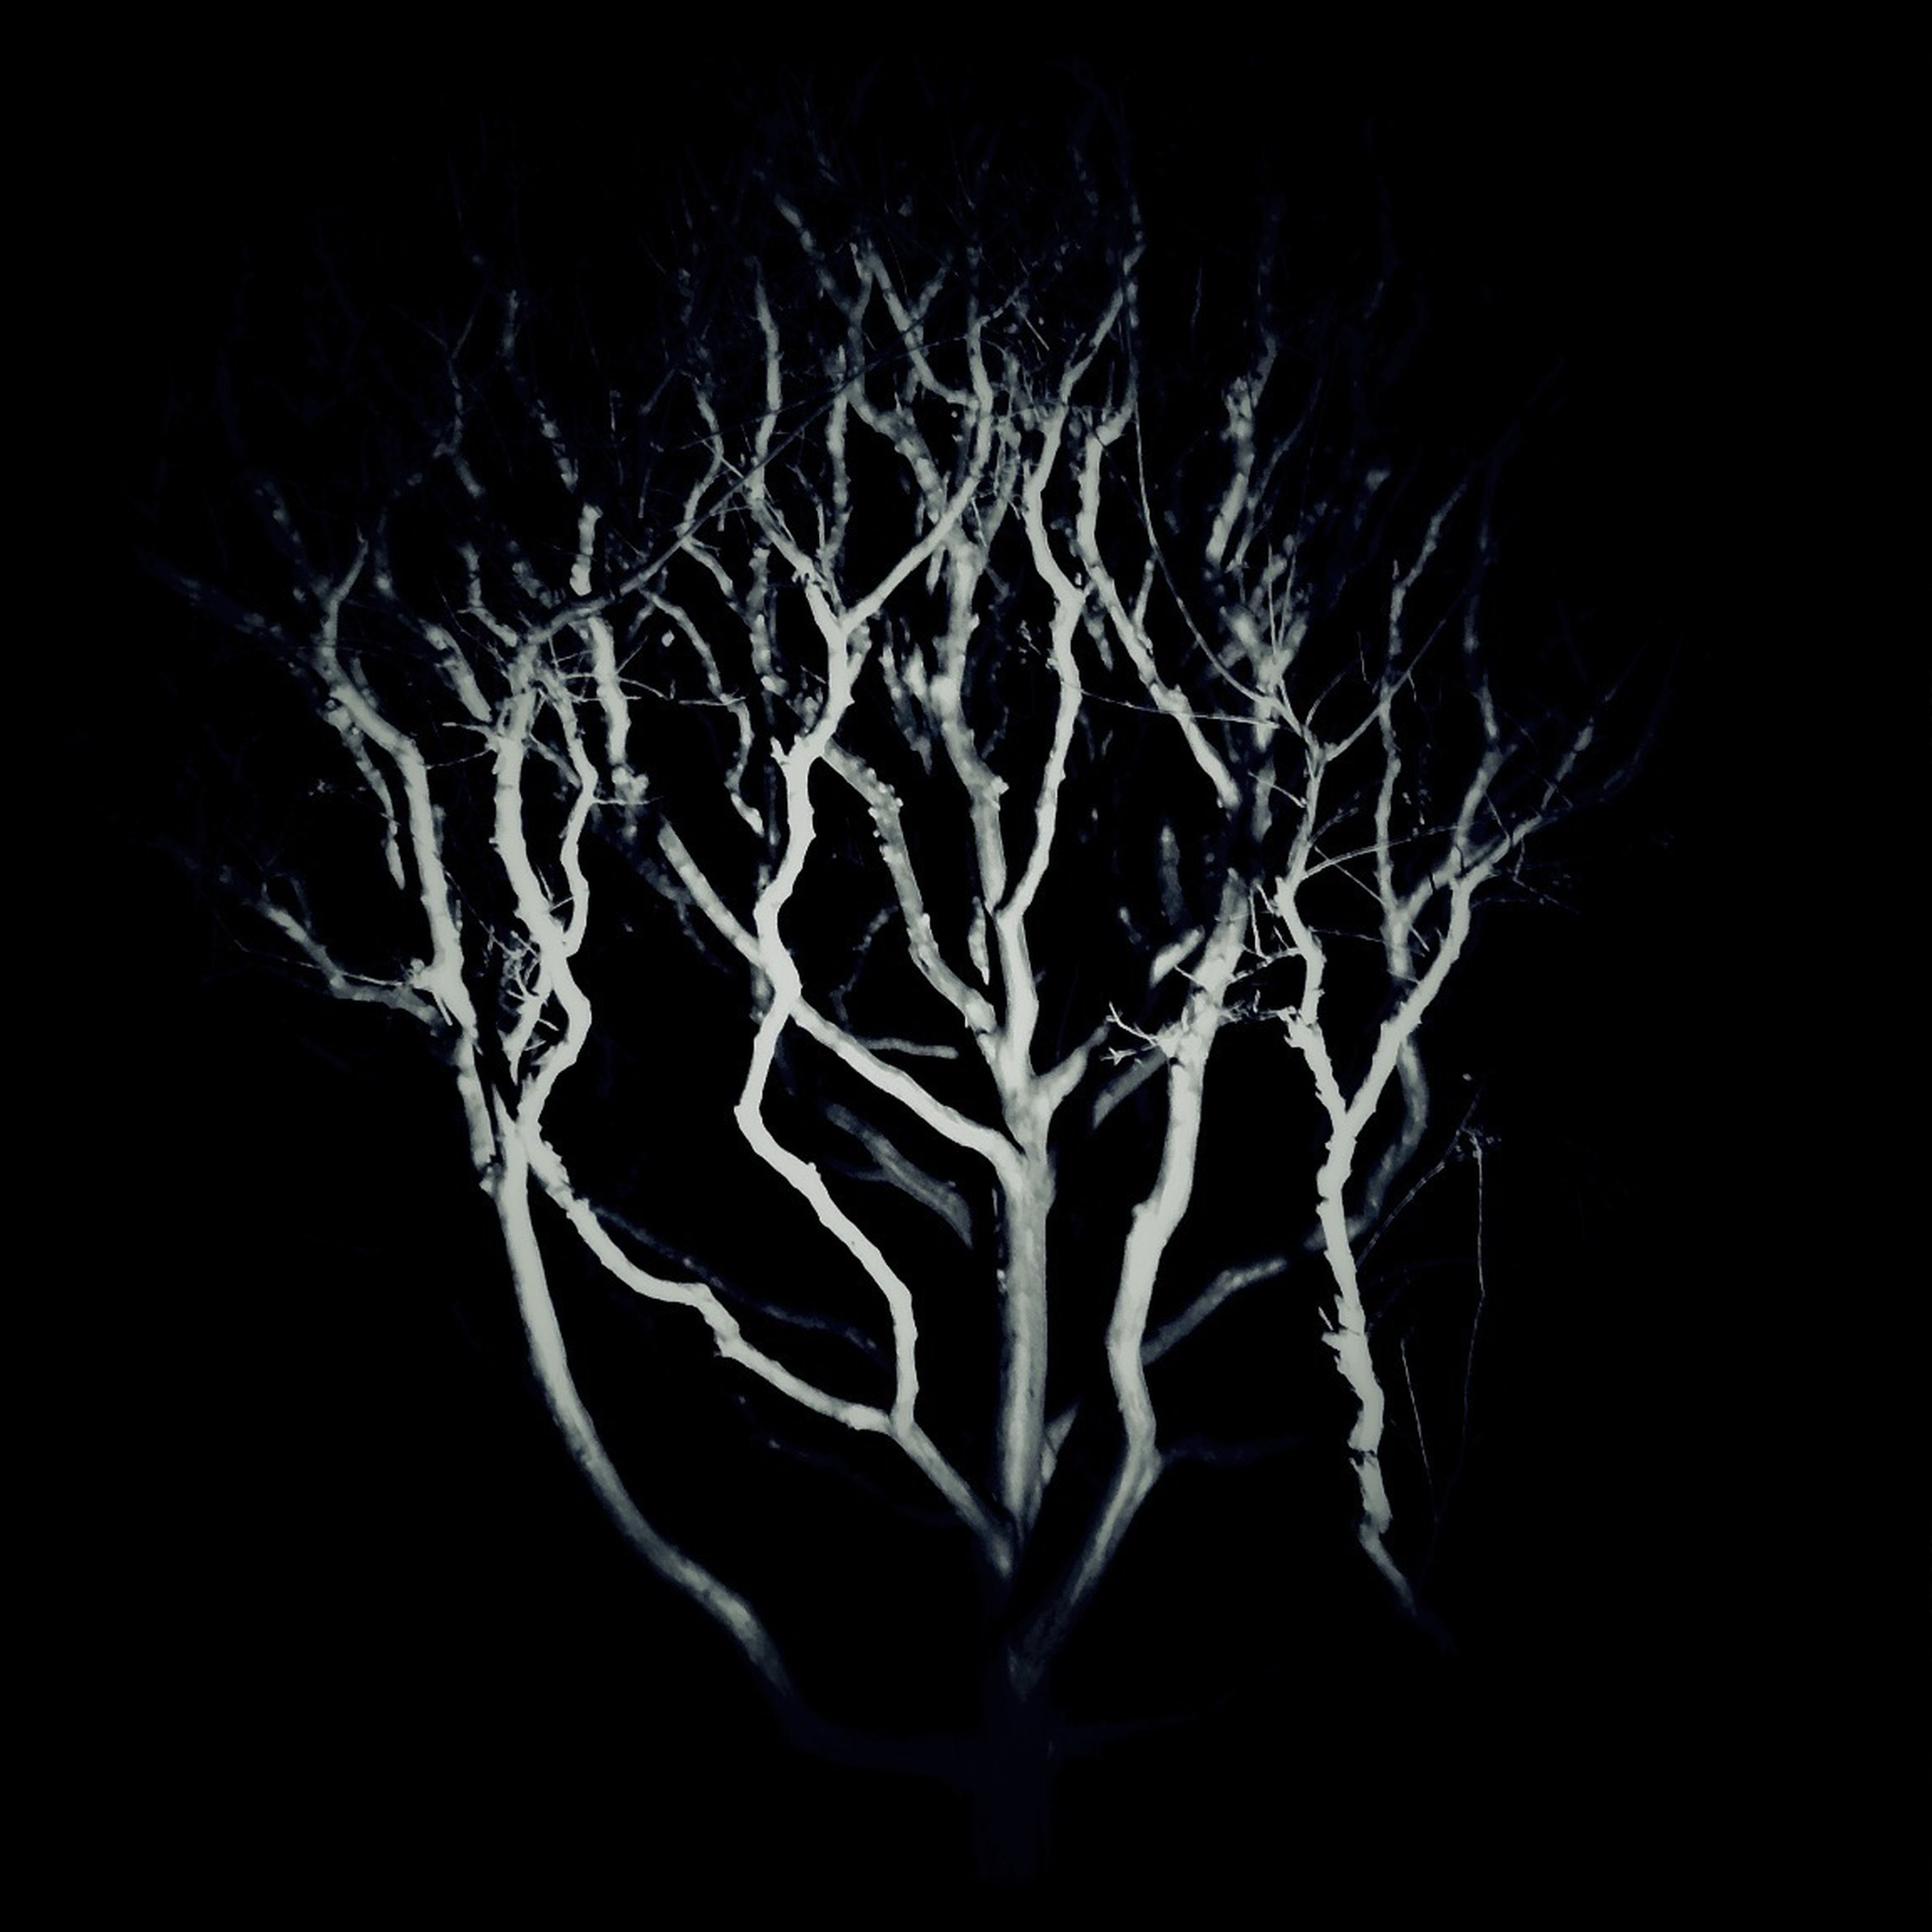 night, dark, black background, studio shot, copy space, spooky, close-up, silhouette, mystery, bare tree, abstract, light - natural phenomenon, nature, outdoors, no people, illuminated, pattern, low angle view, tree, branch